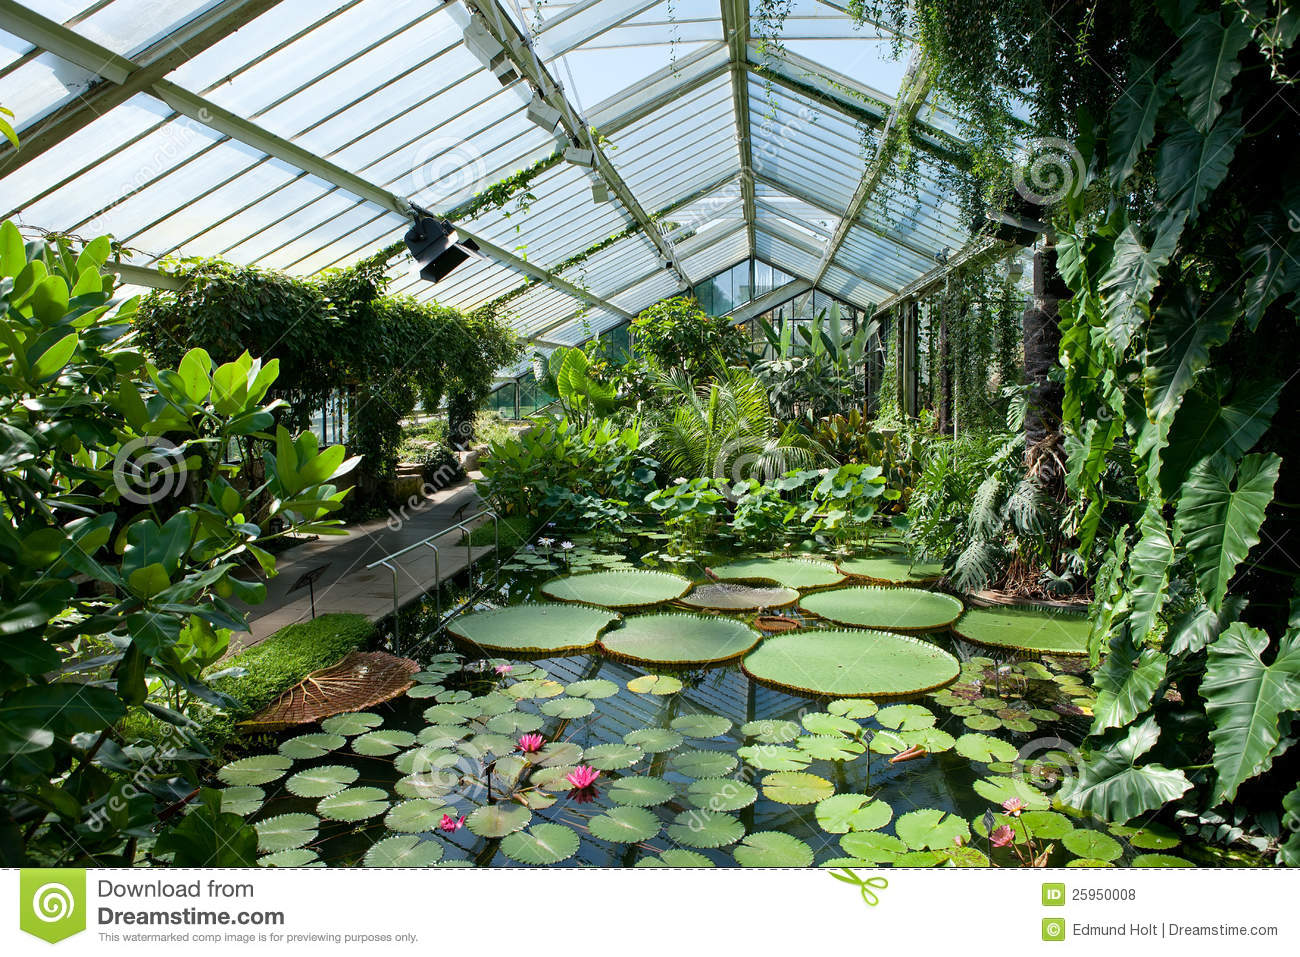 Royalty Free Stock Photos Waterlily House Kew Gardens Image25950008 on plan of mansion house design